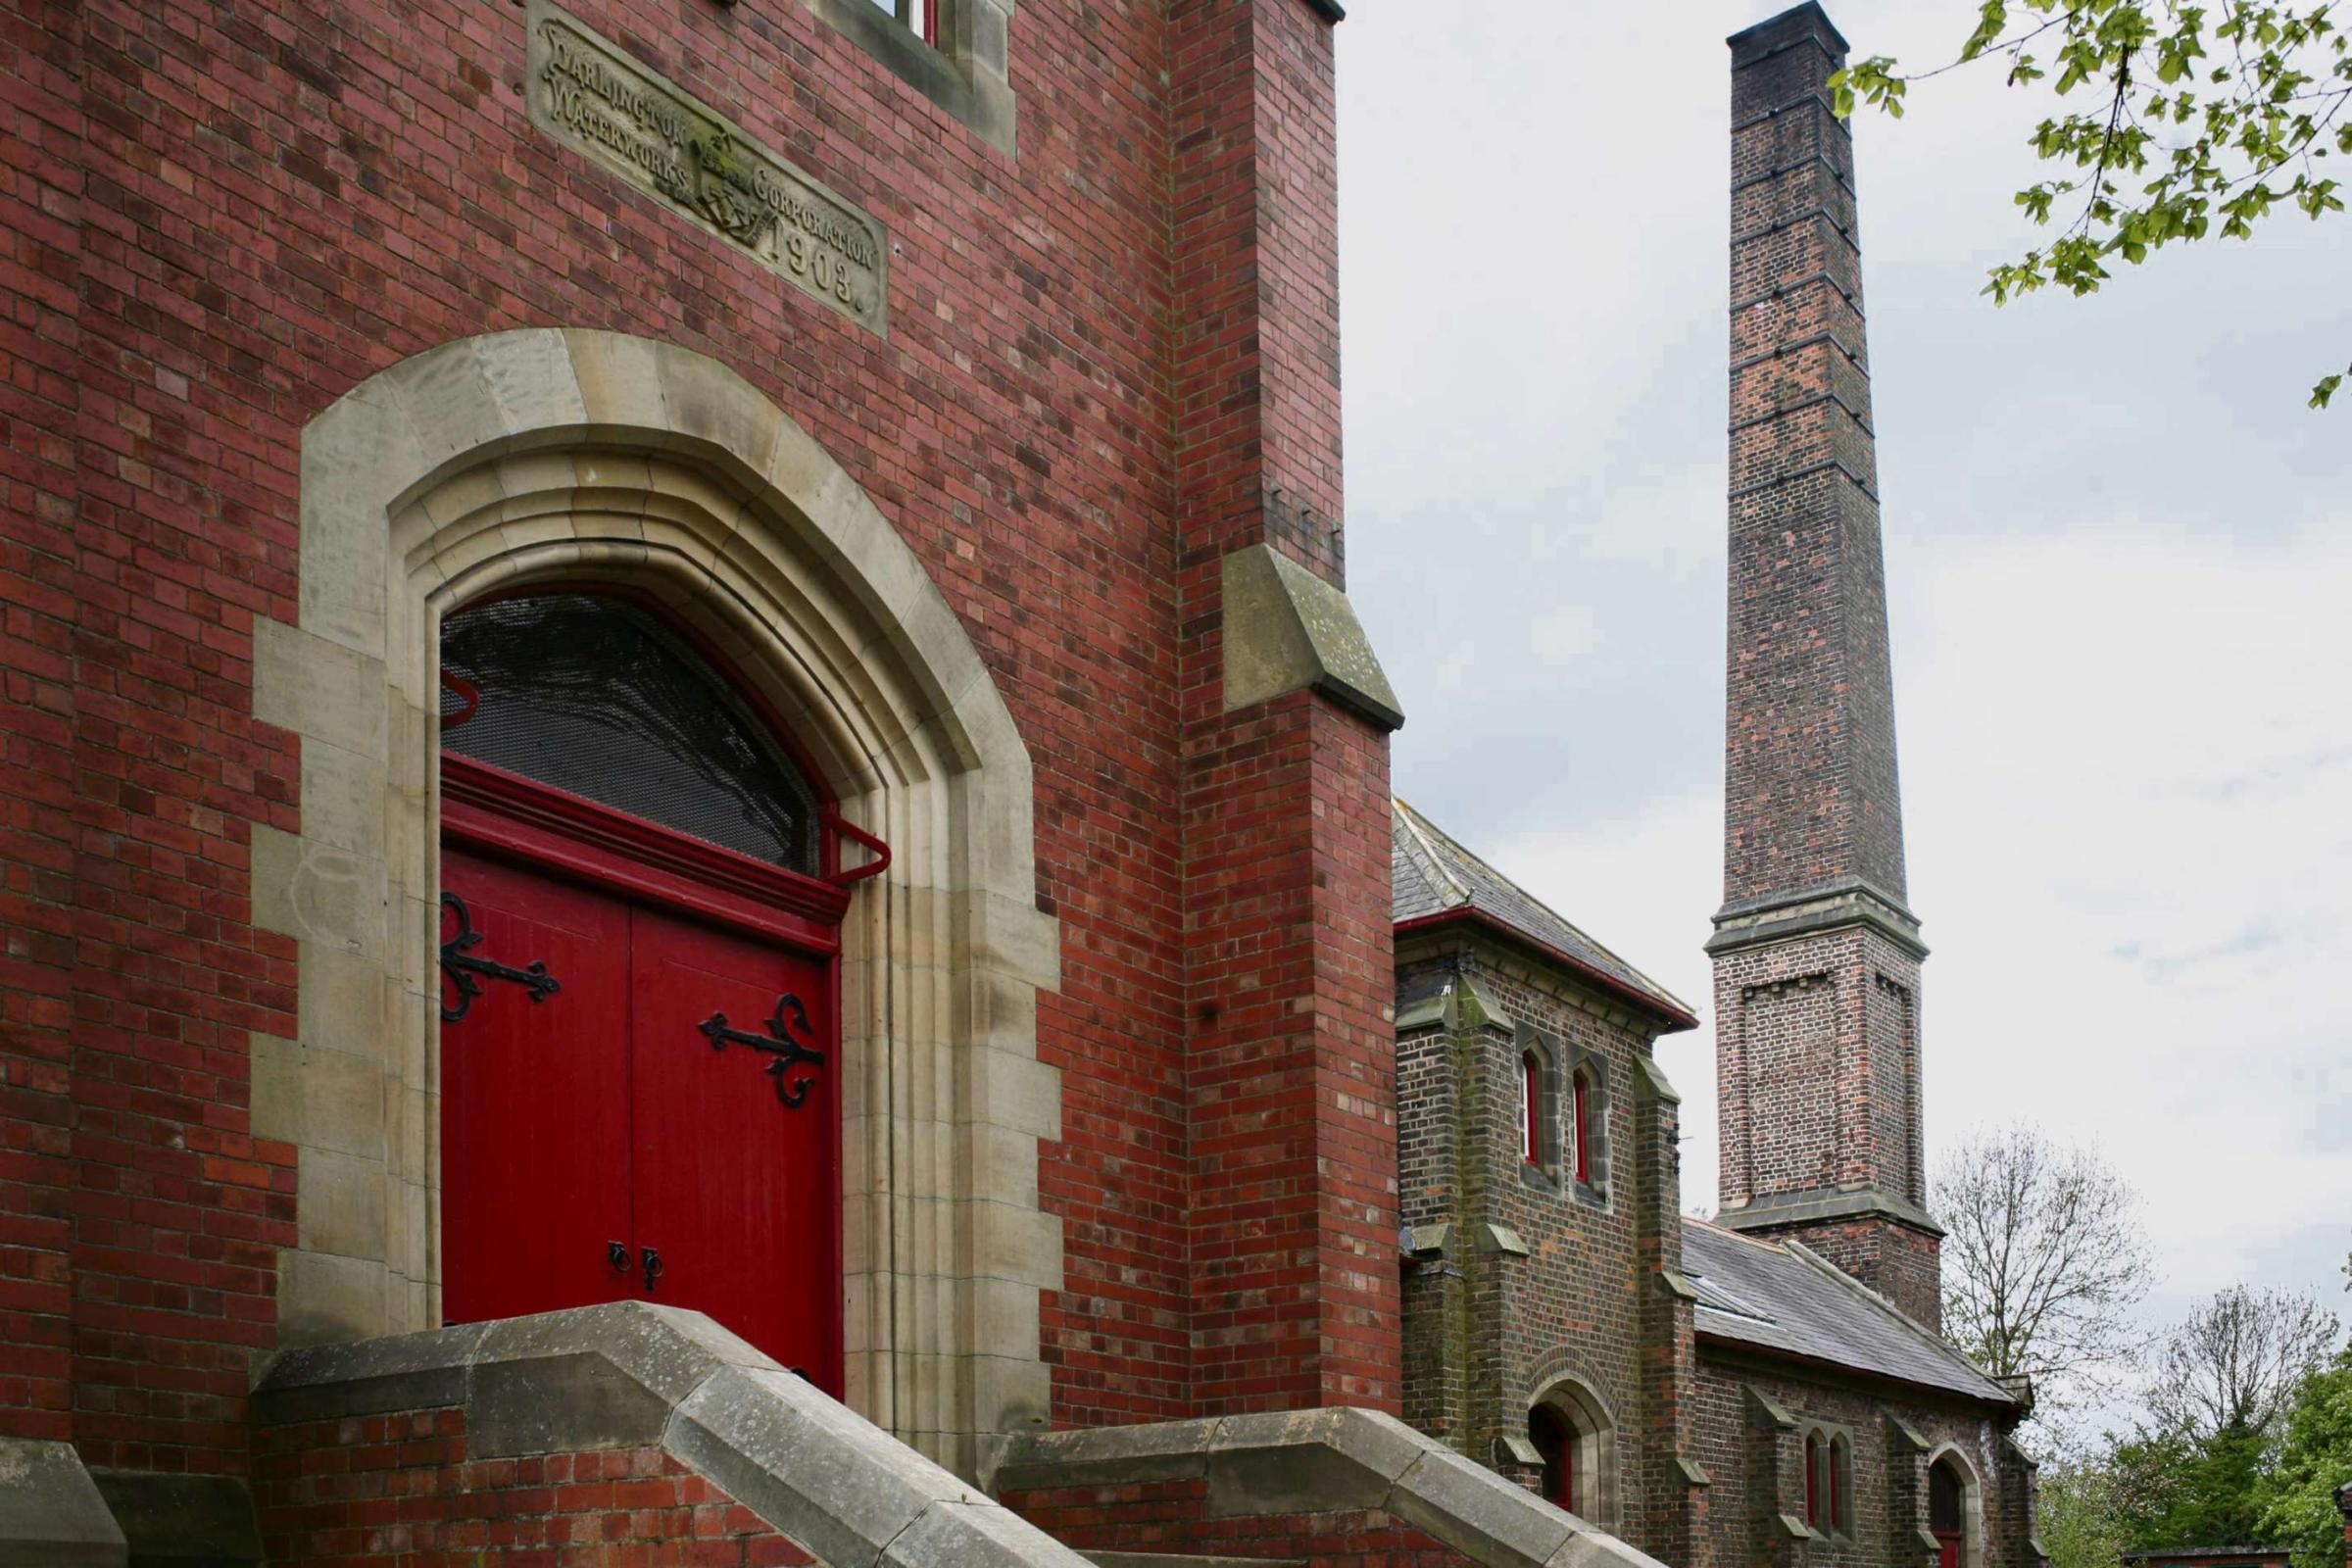 Historic Darlington pumping station closed due to safety and structural concerns